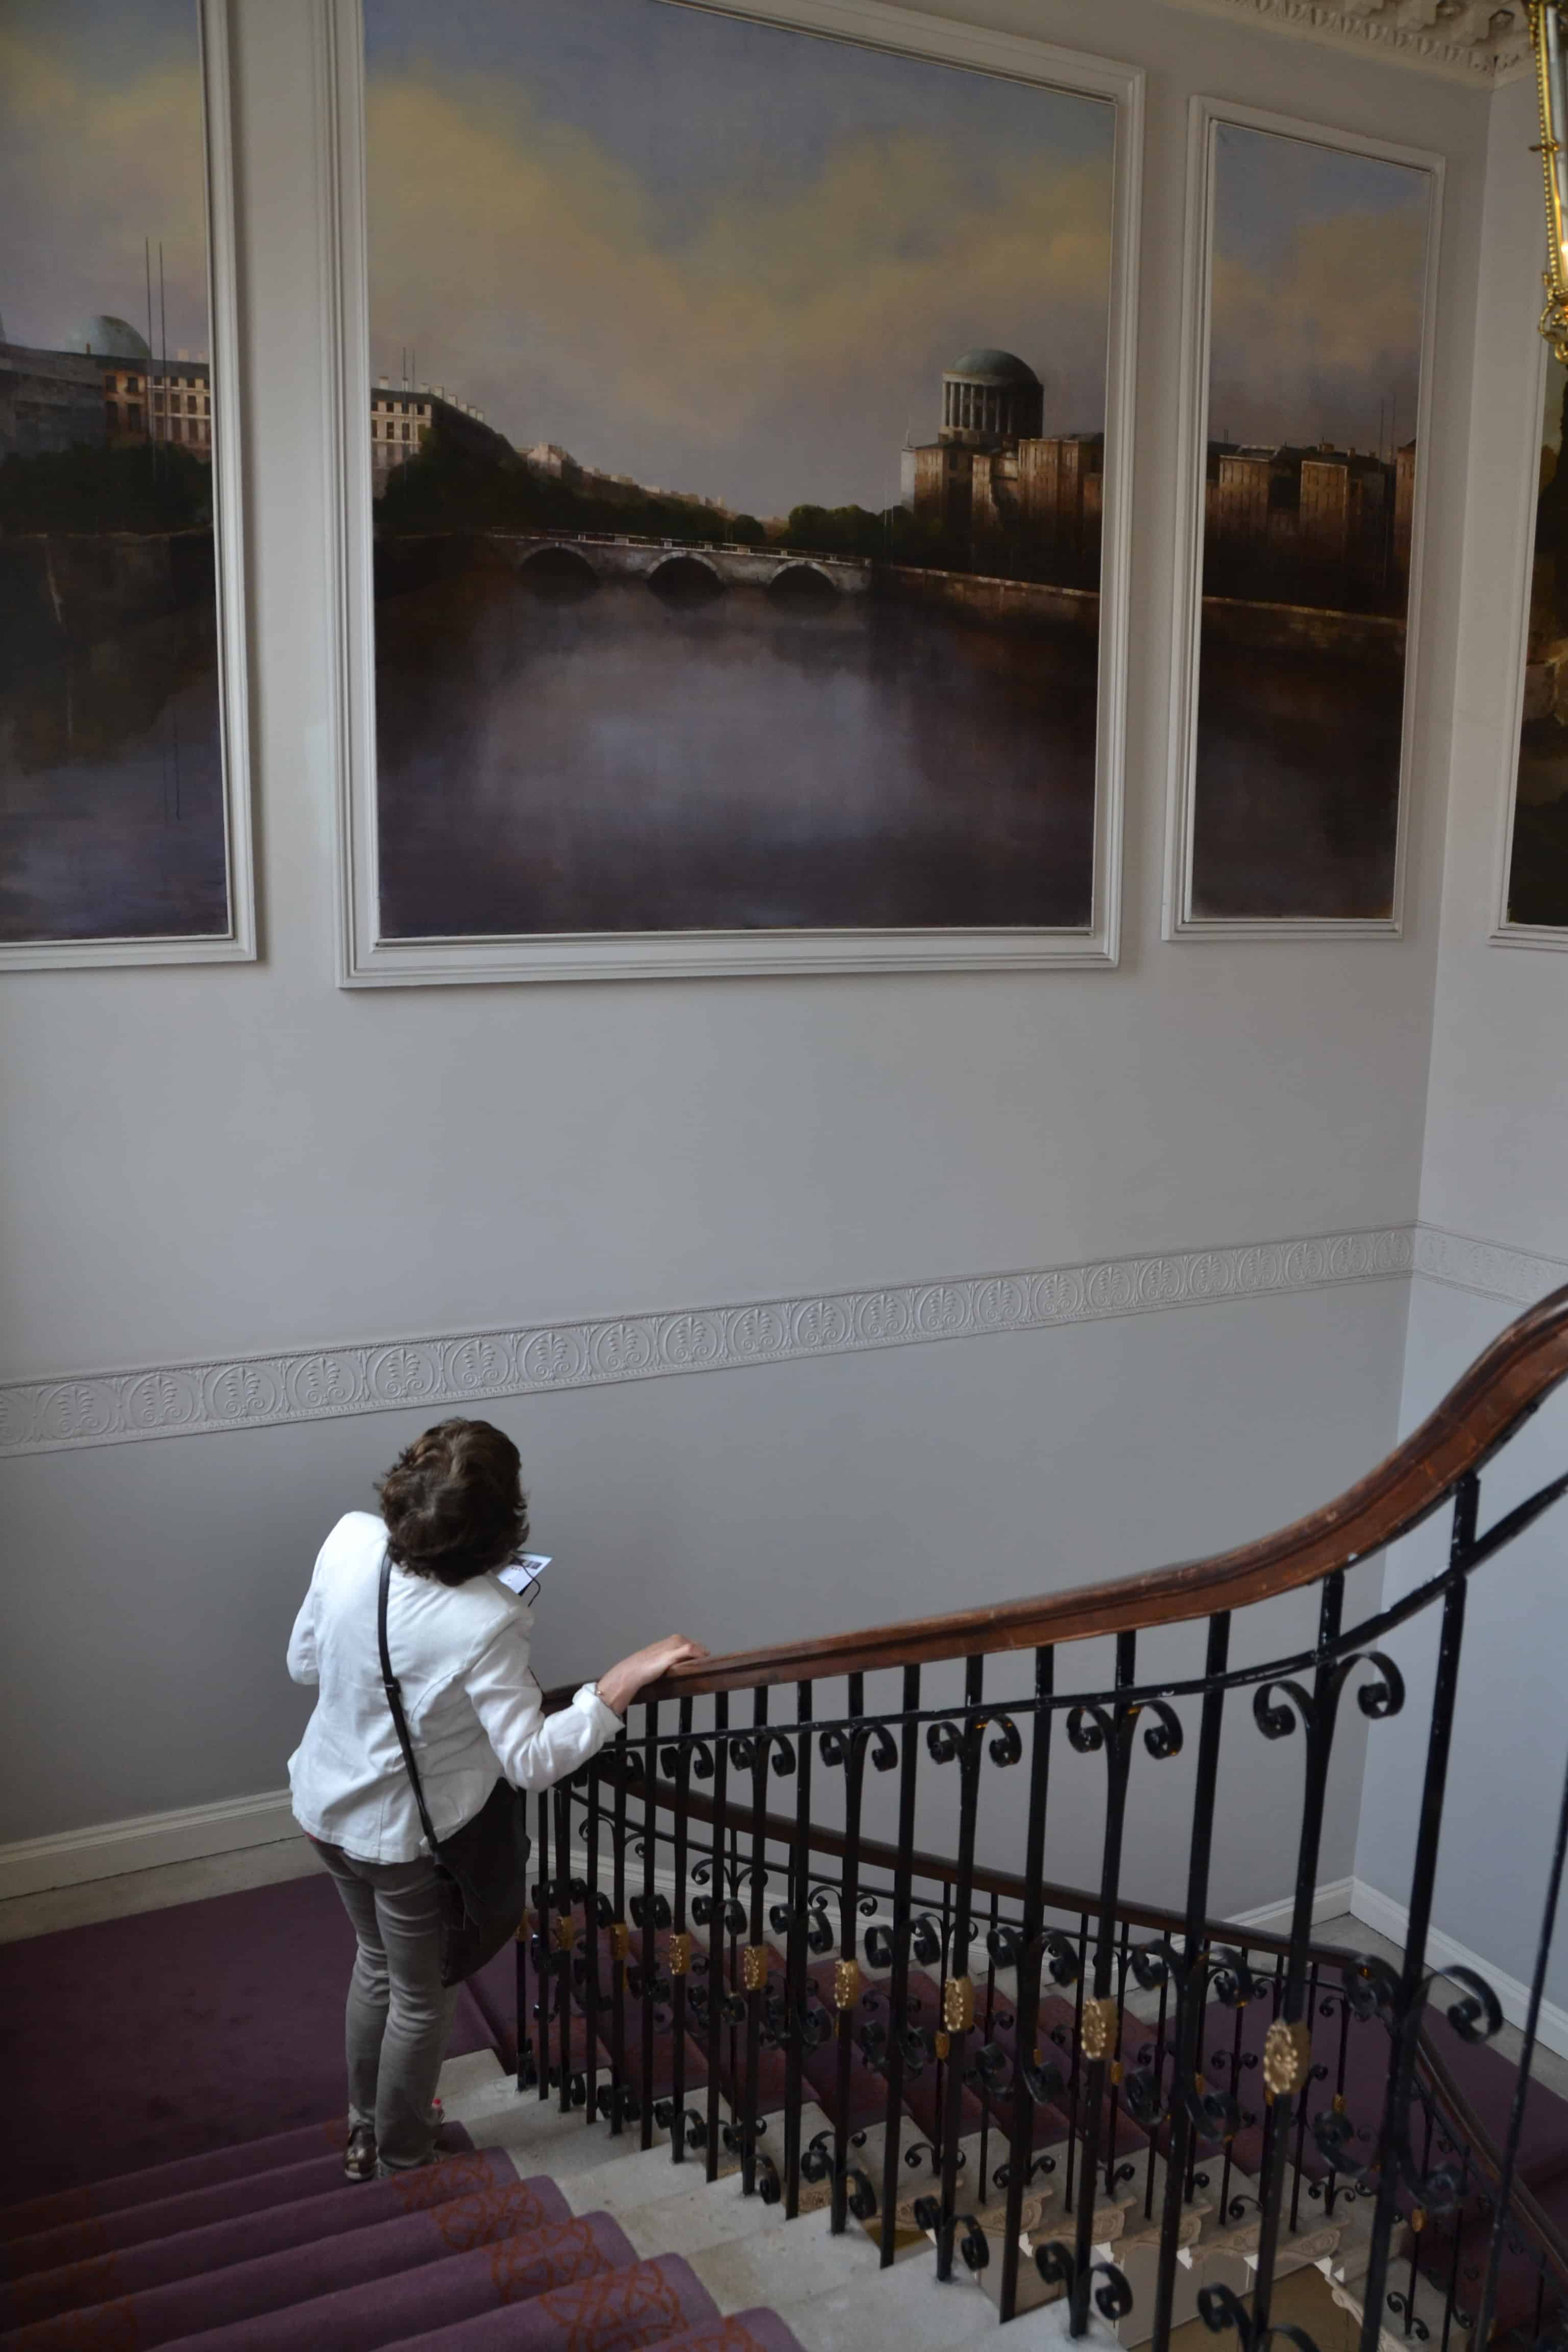 Kunst in Dublin in het Merrion hotel